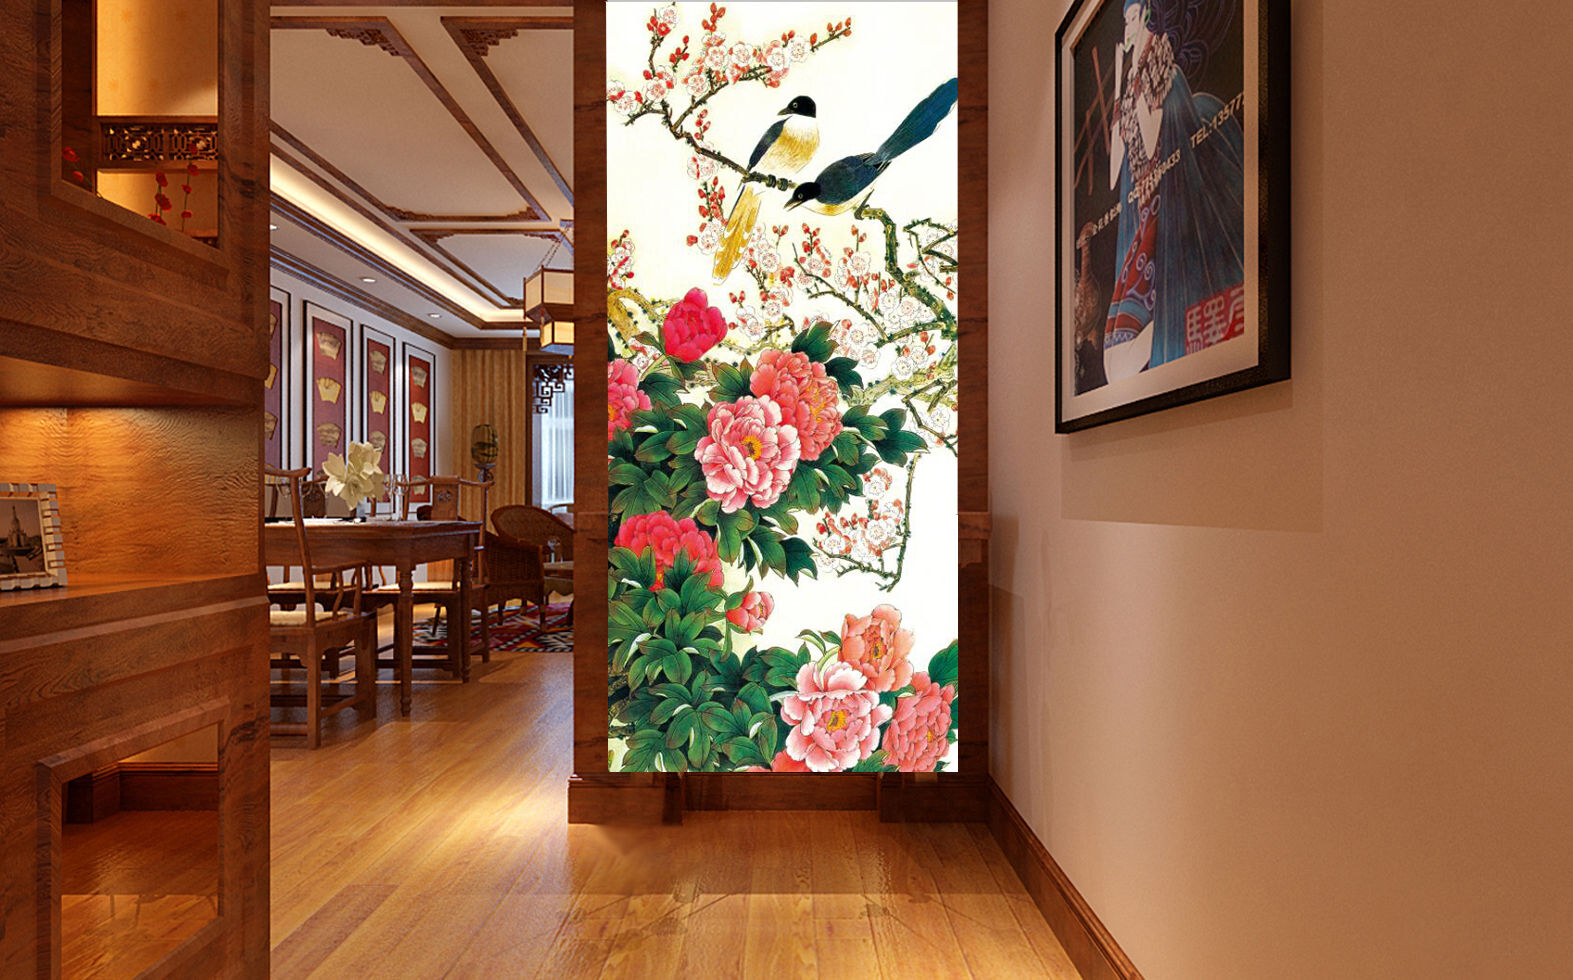 3D Bird flowers Retro Wall Paper wall Print Decal Wall Deco Indoor wall Mural